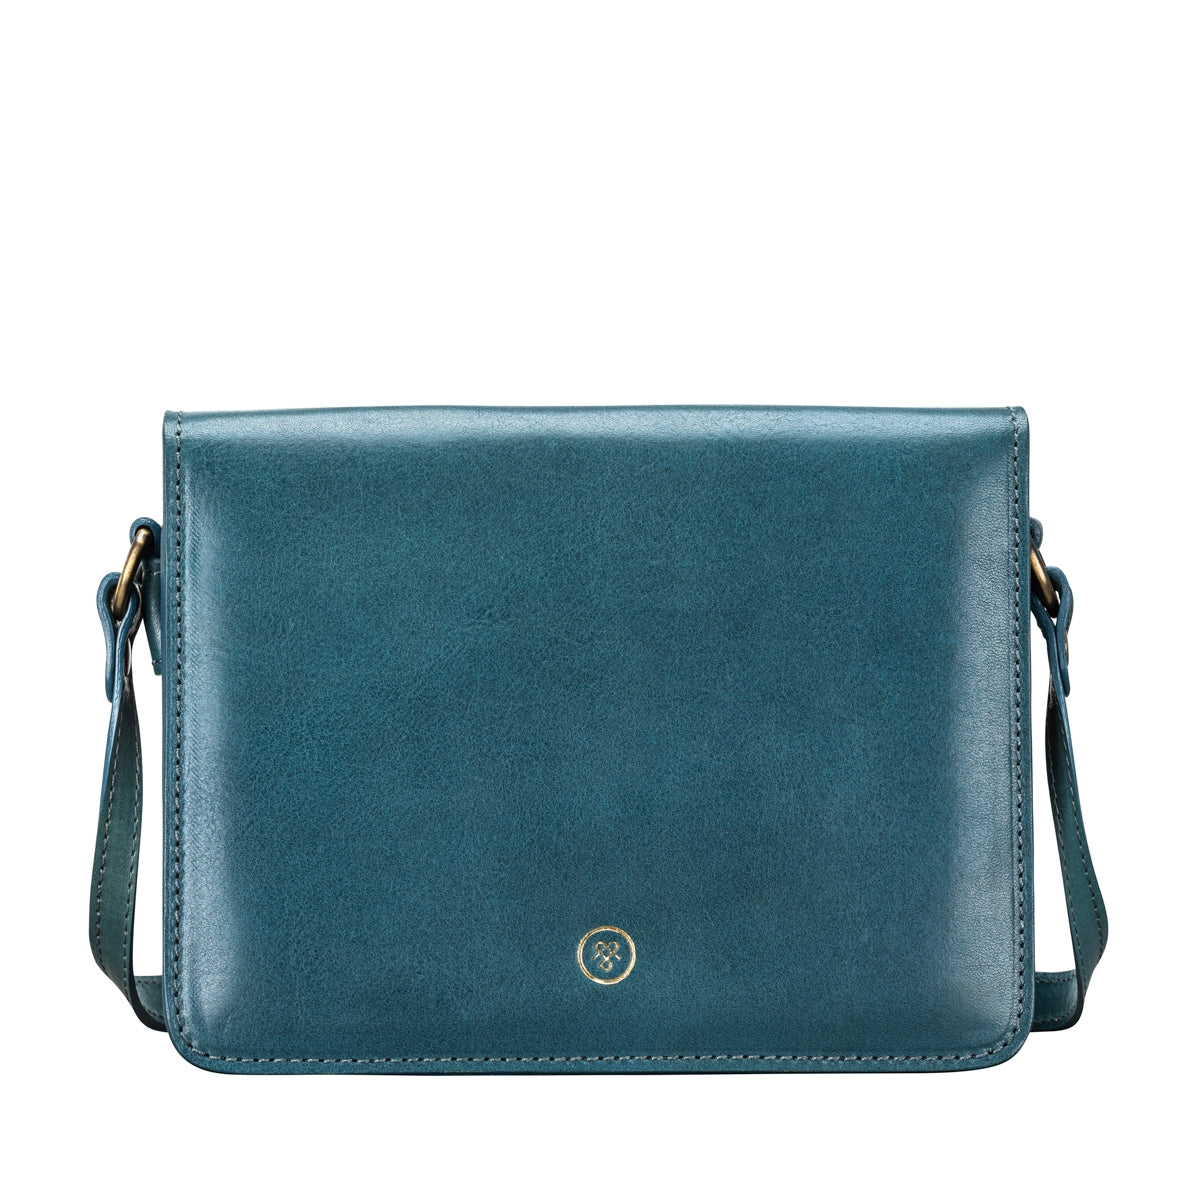 Image 1 of the Lucca' Petrol Leather Cross Body Bag